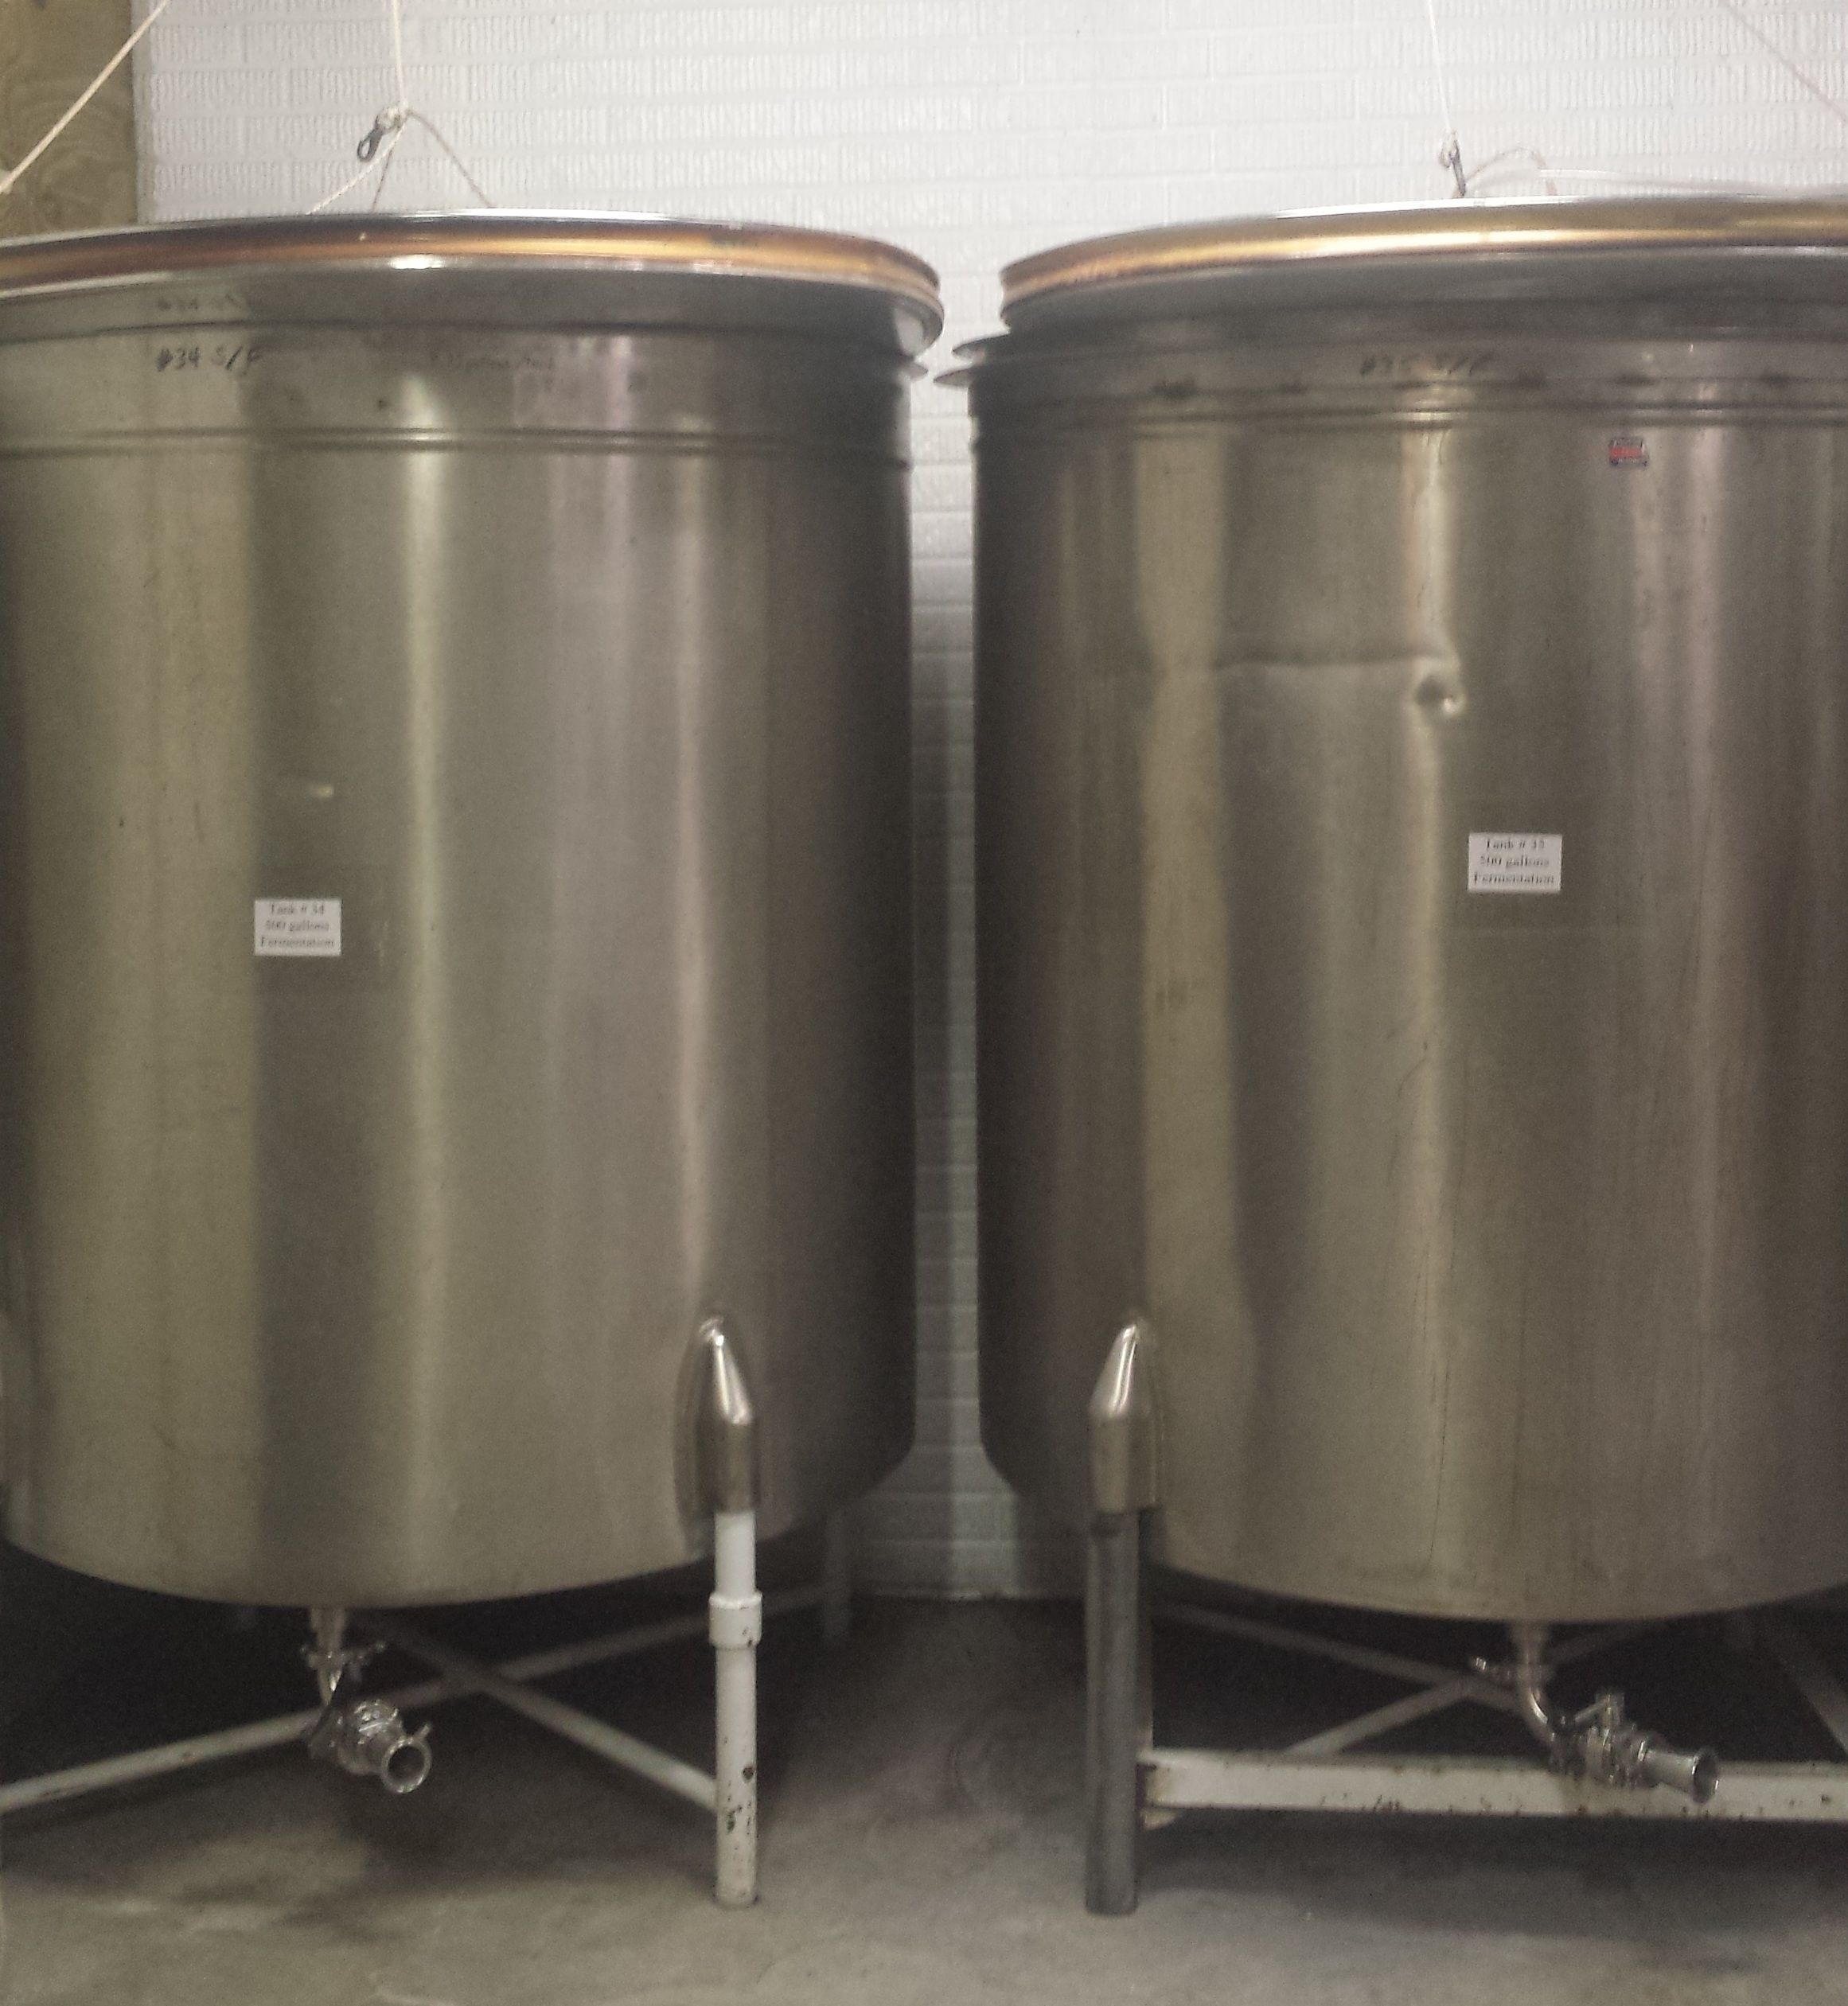 2 - 500 gallon stainless steel fermentation tanks w/floating lids $300 each